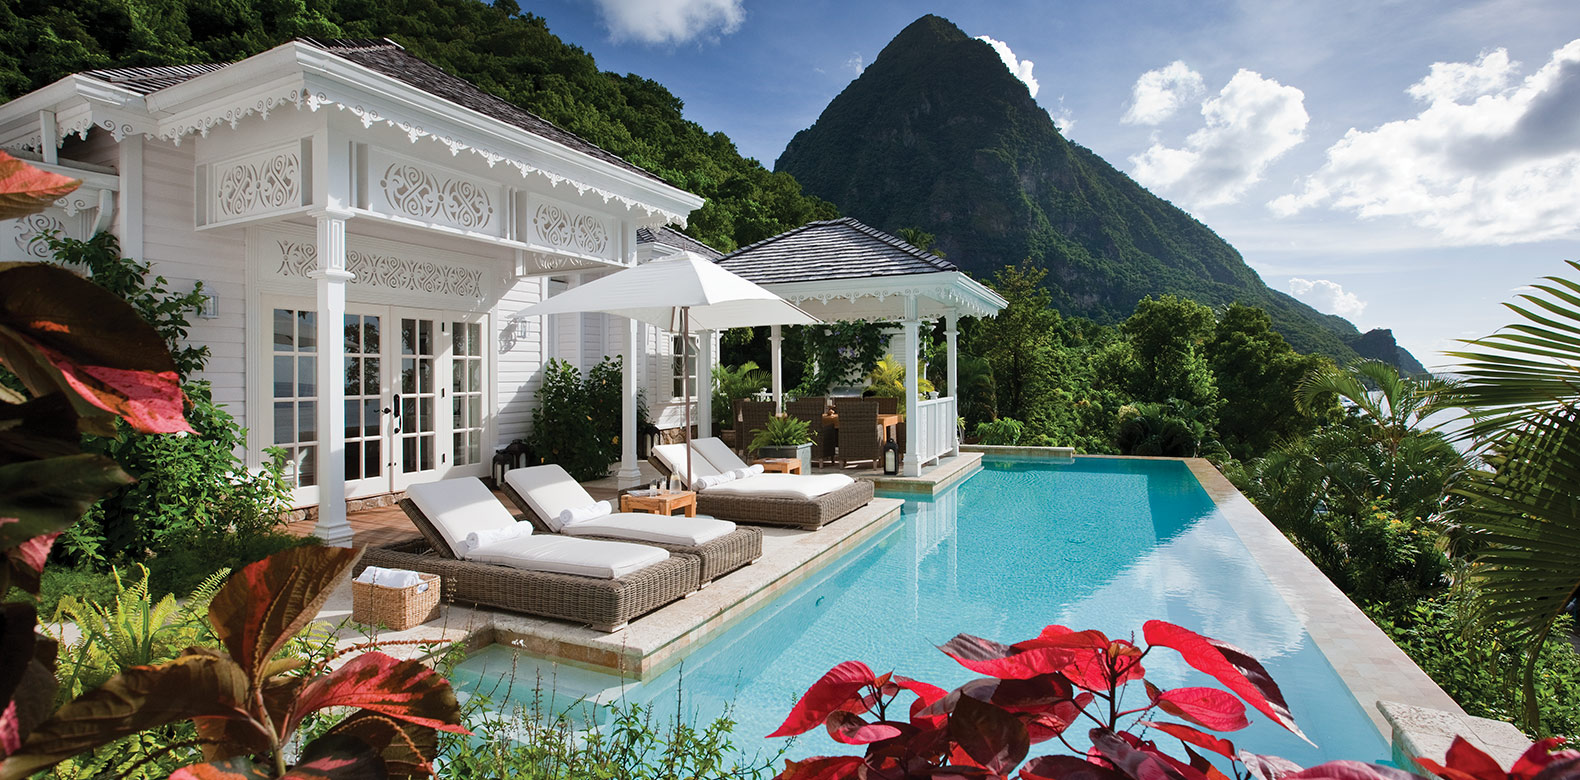 Viceroy Sugar Beach St Lucia Trends Travel